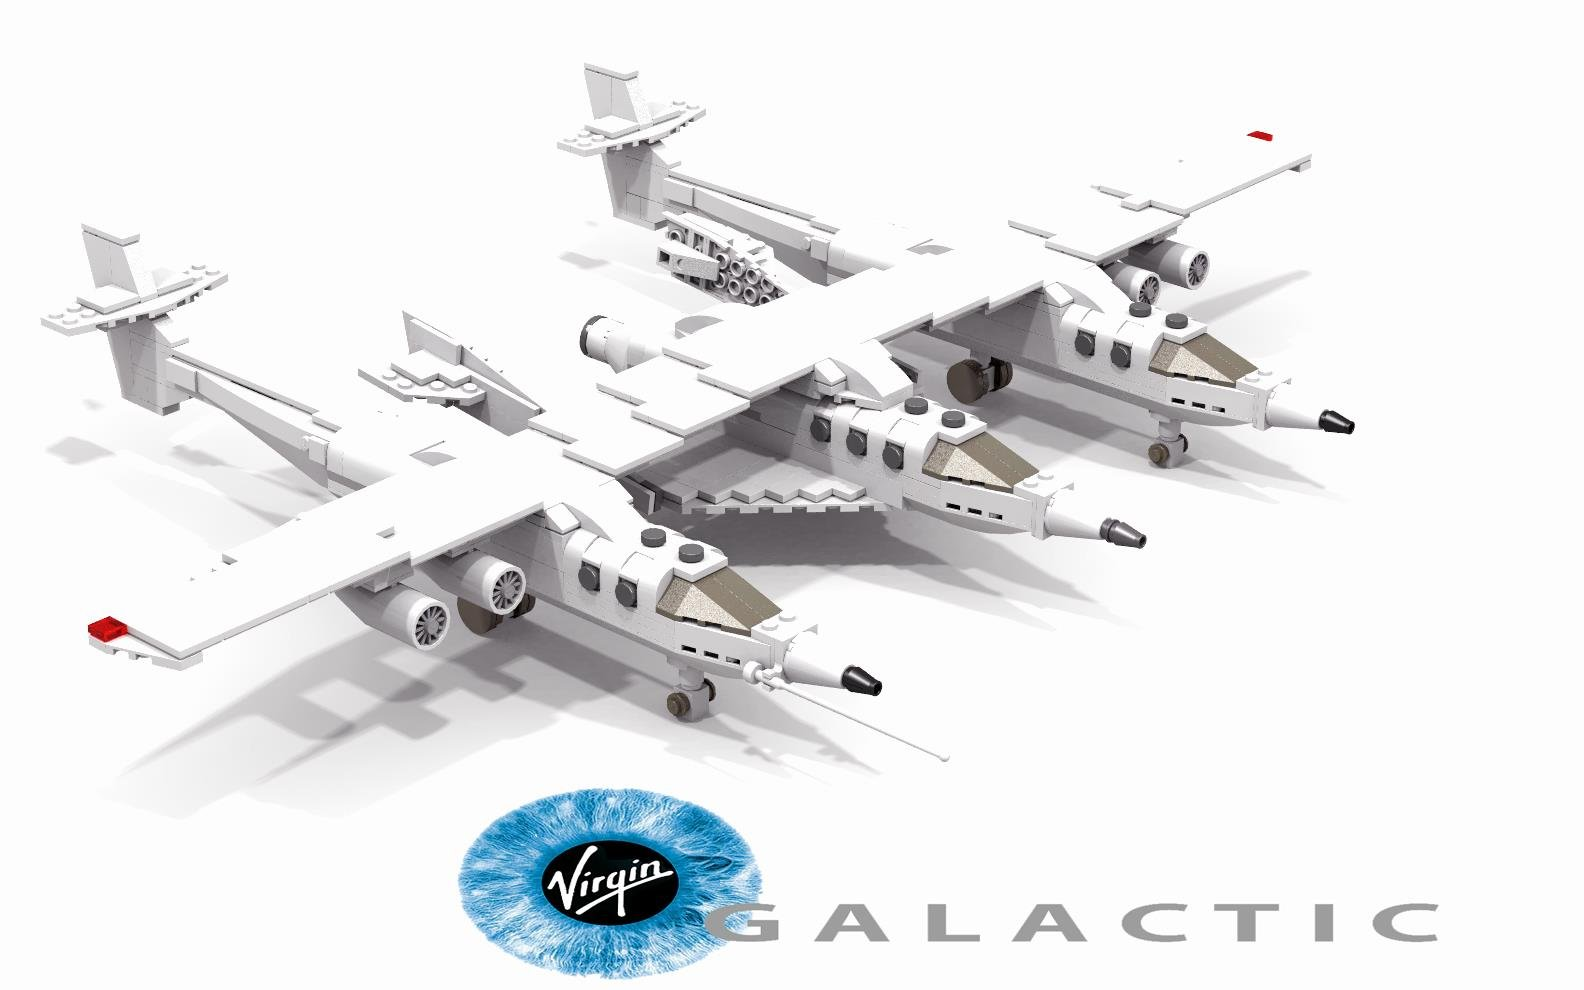 Brick By Brick Could This Be Virgin Galactic Lego